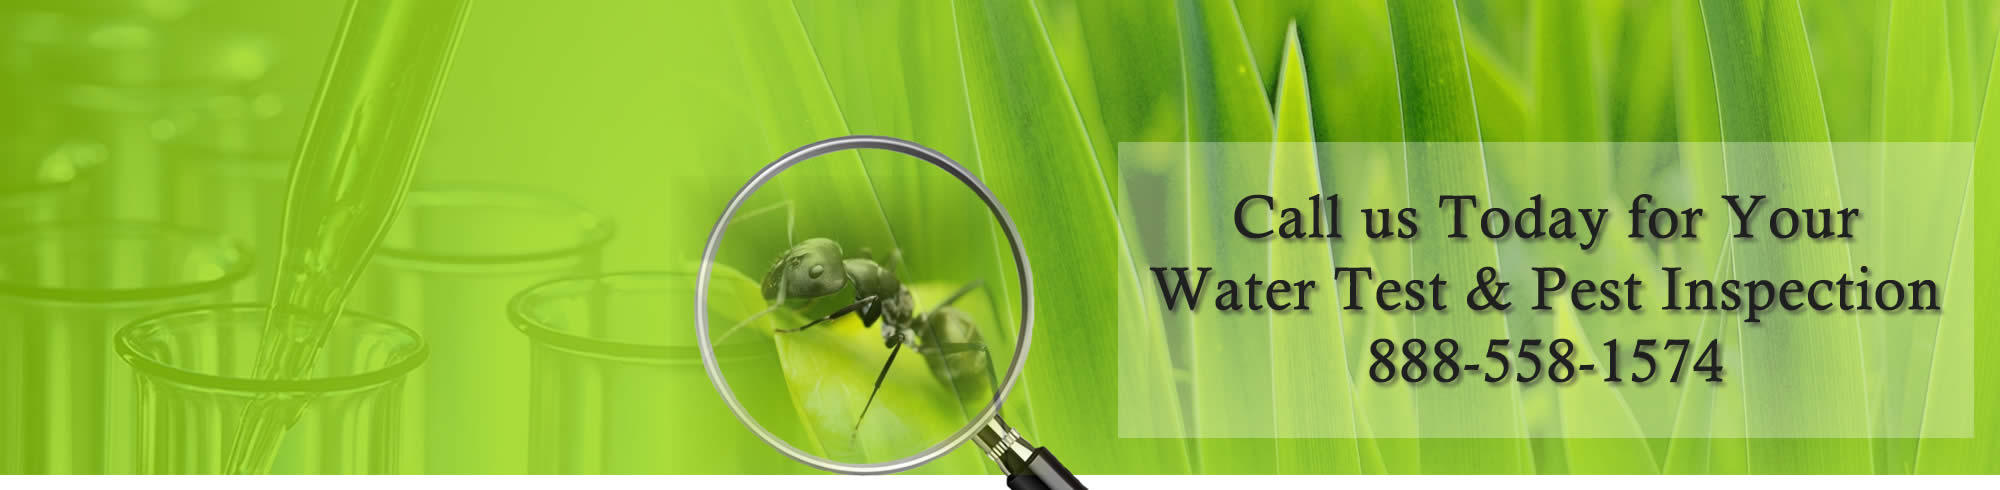 CT Water Tests & Termite Inspection